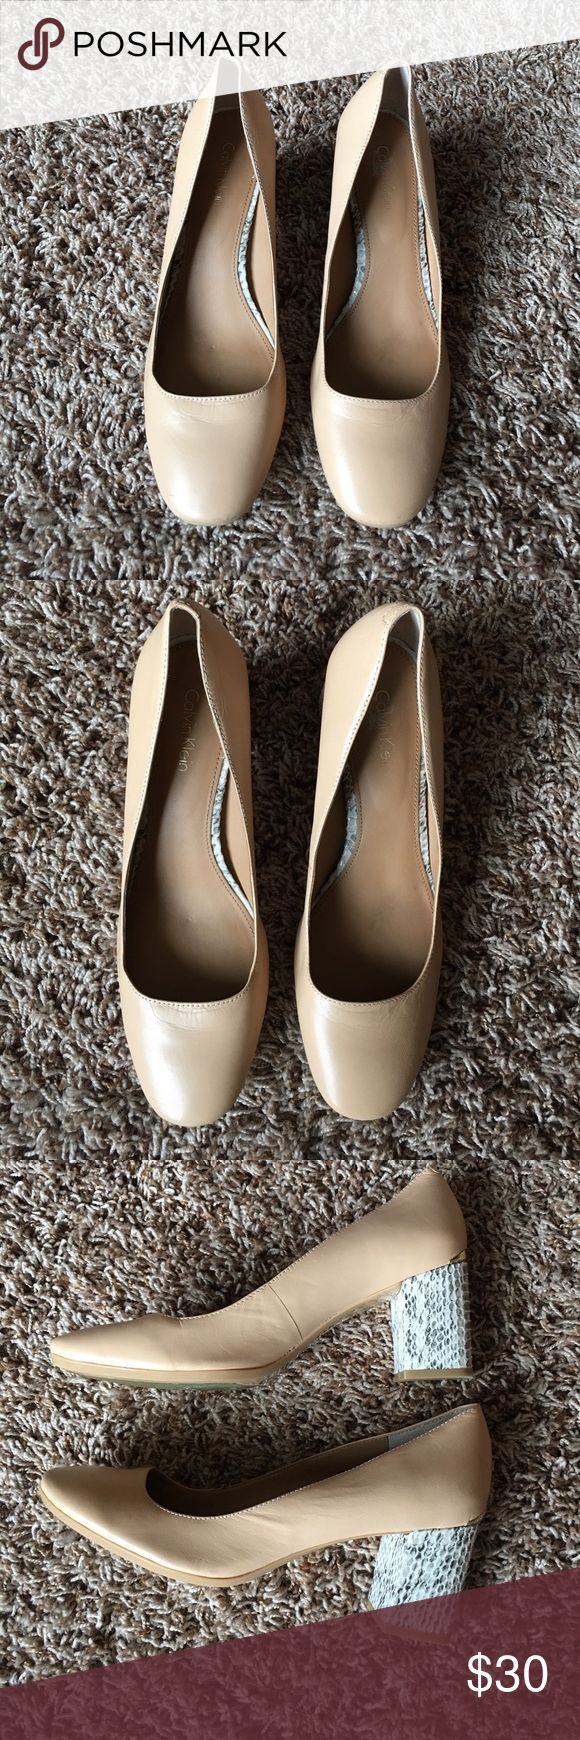 CALVIN KLEIN LEATHER AND SNAKE SKIN SHOES 💕SALE💕 In mint condition, only been worn about 3 times. Leather with gold plate on back. Calvin Klein Shoes Heels